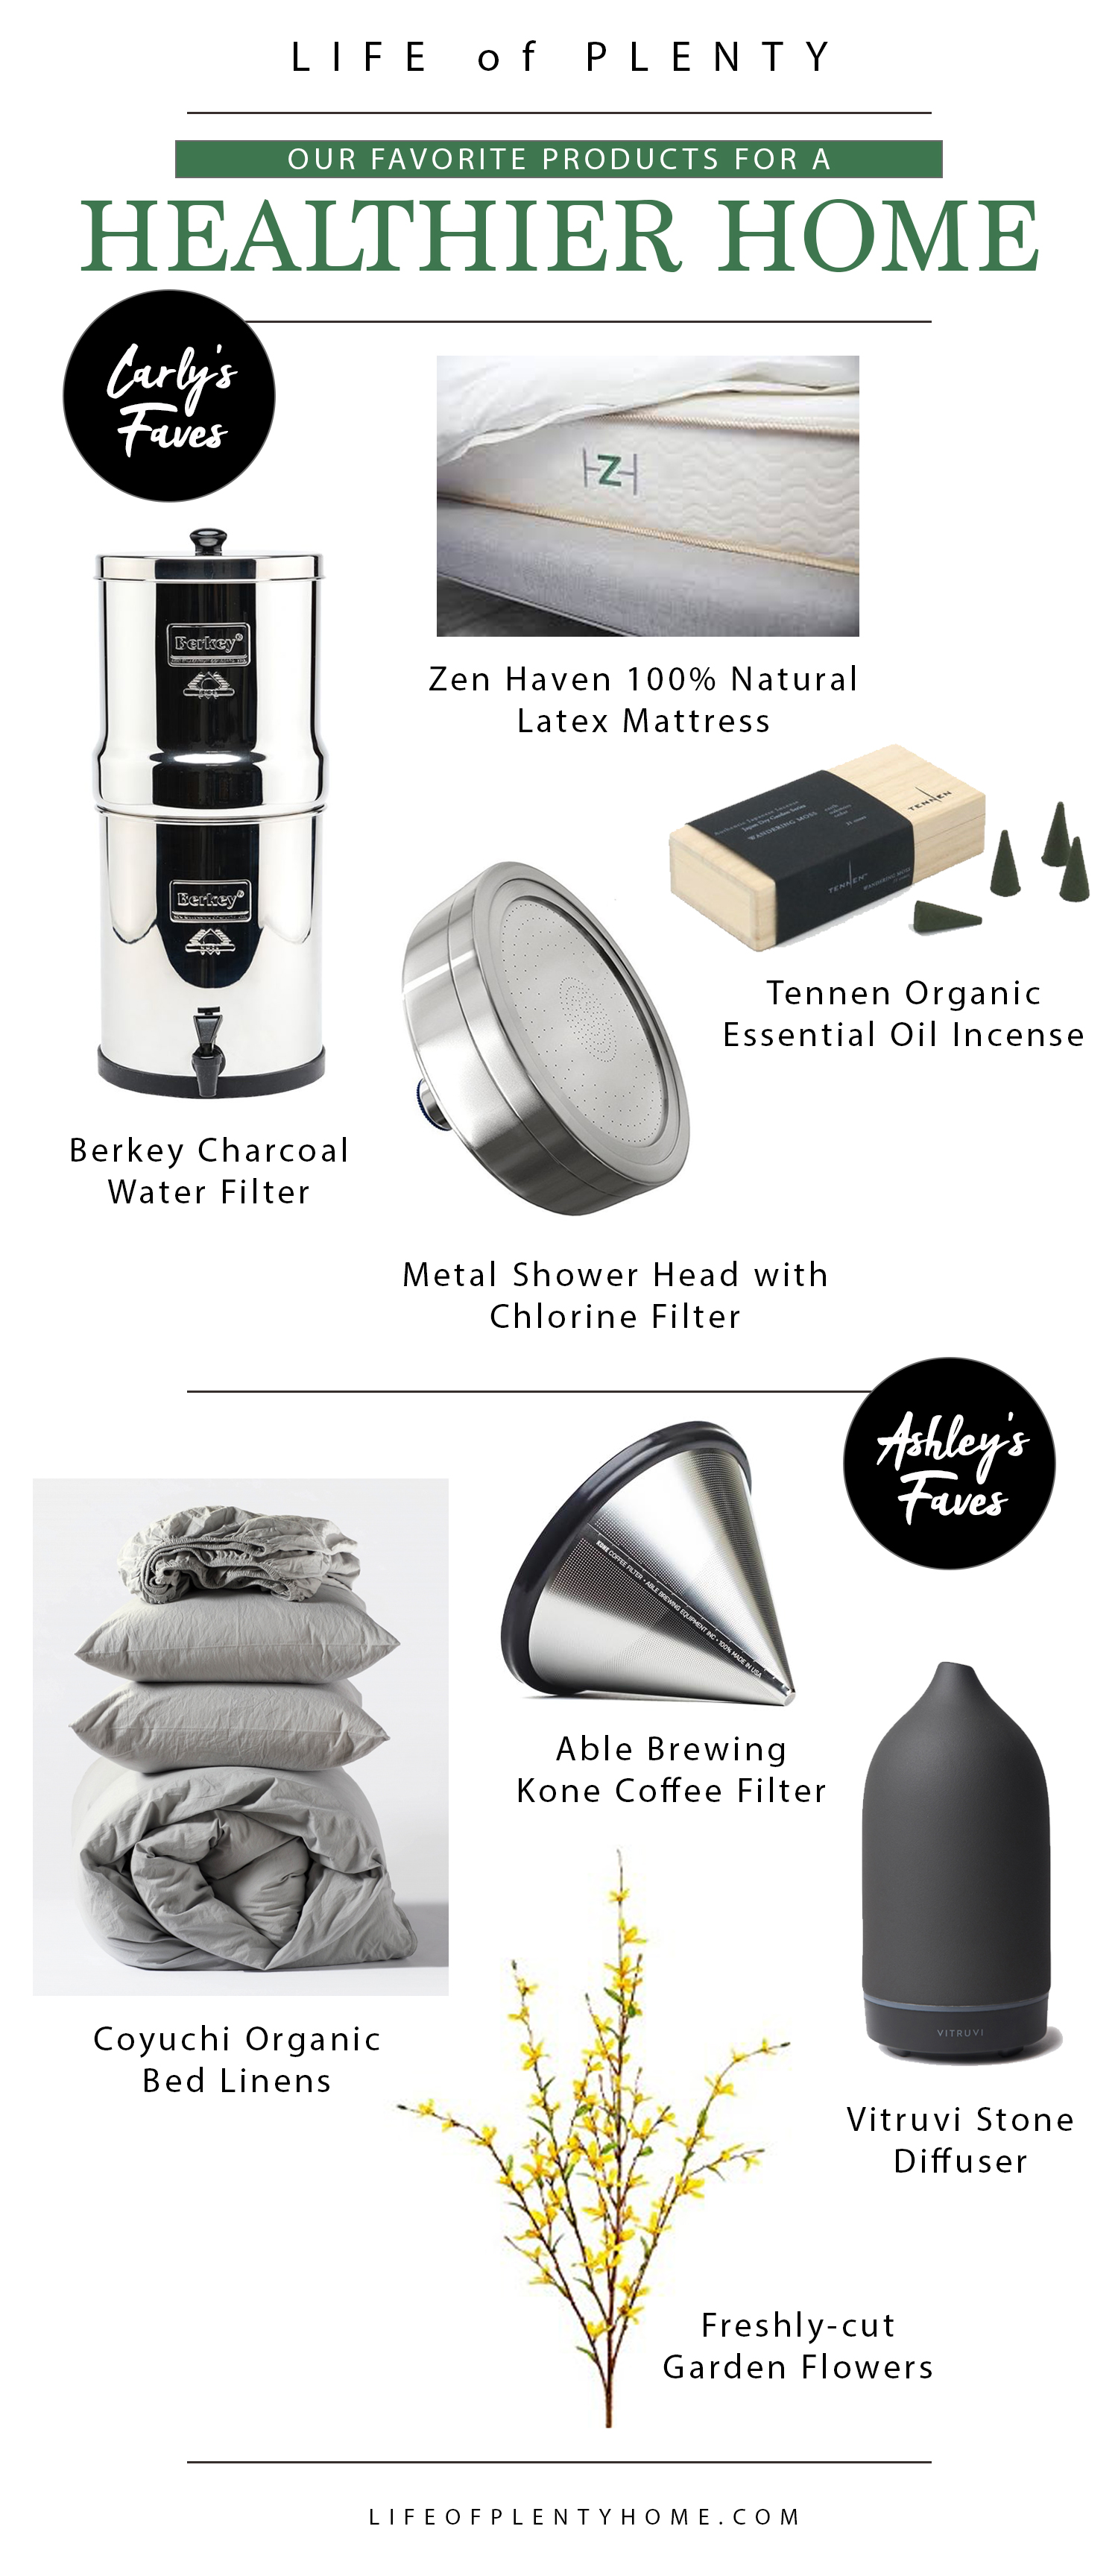 Products for a Healthier Home | Life of Plenty